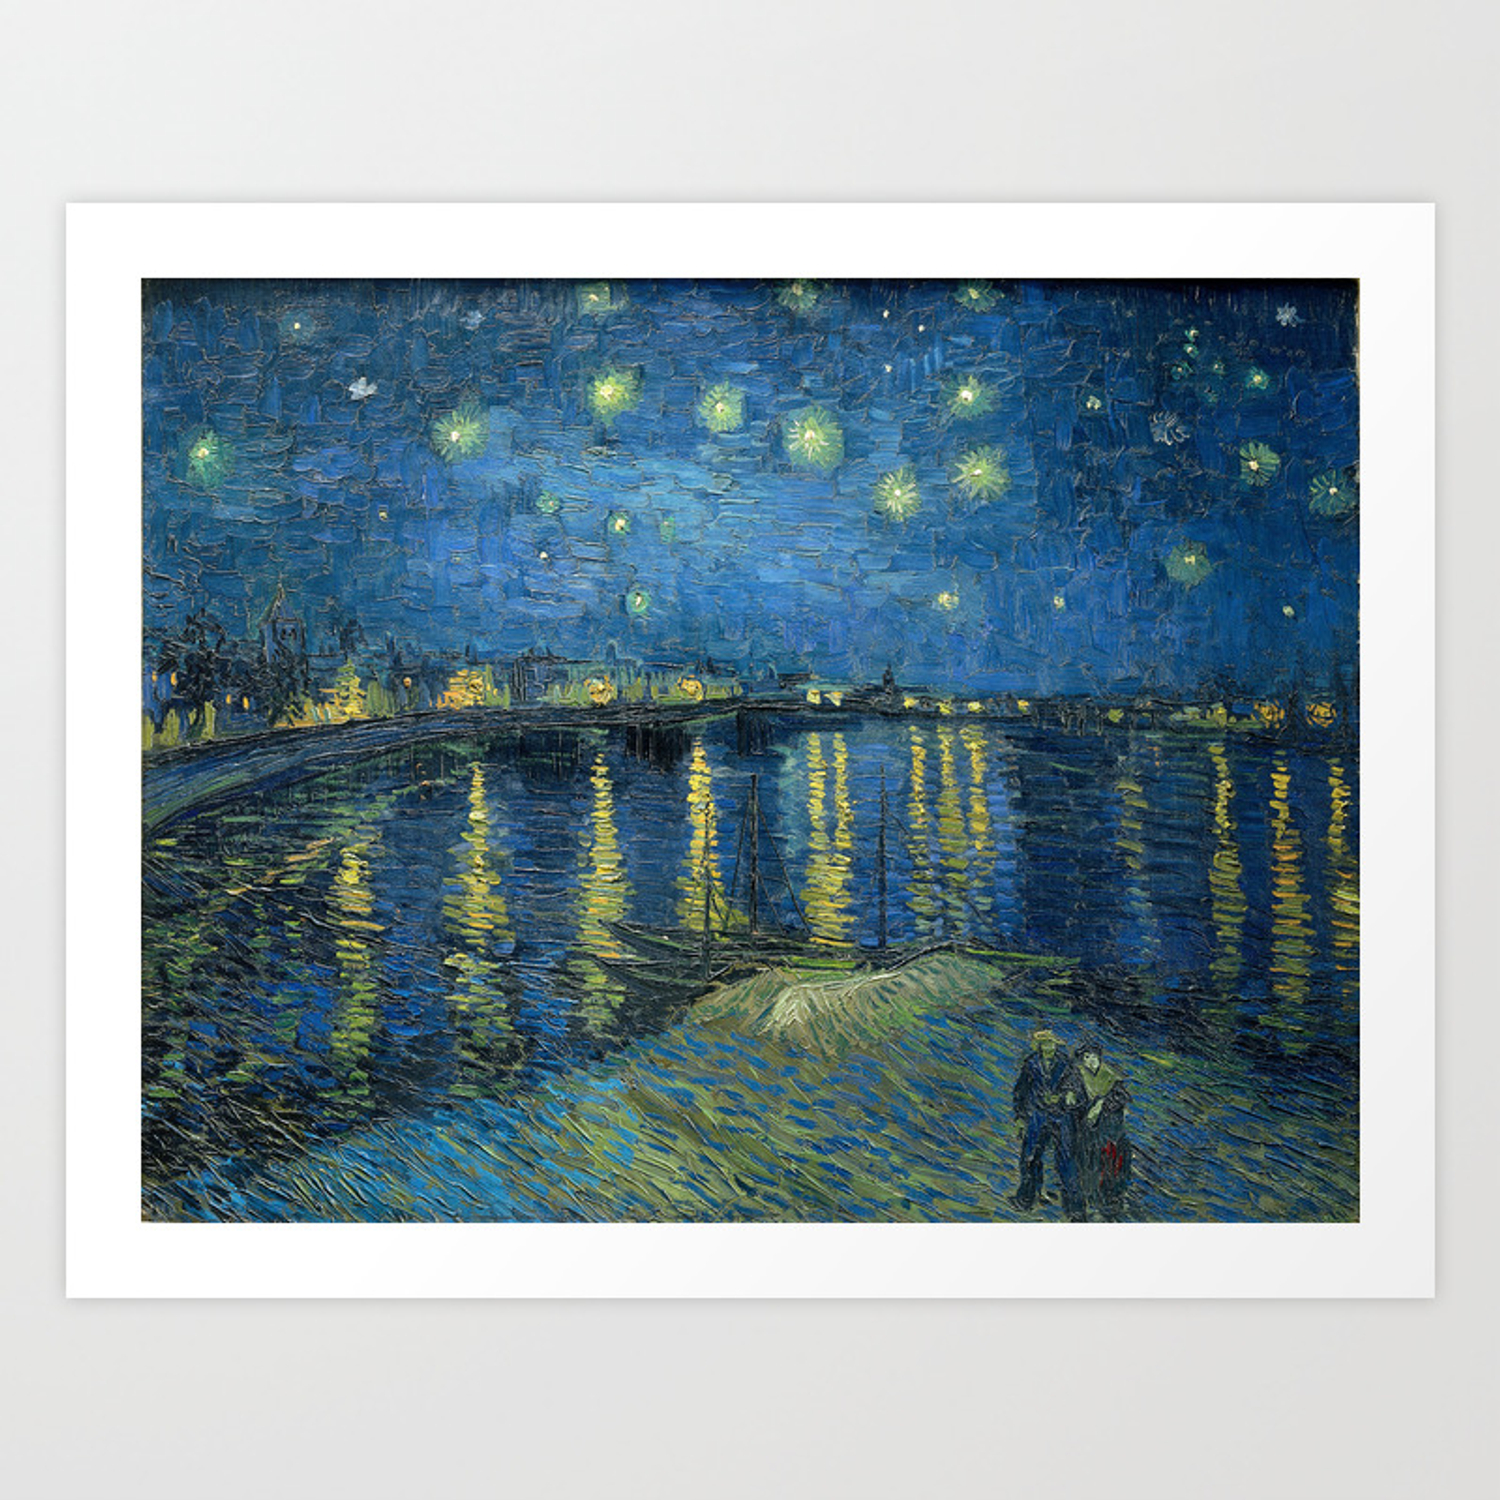 Vincent Van Gogh / Starry Night Over the